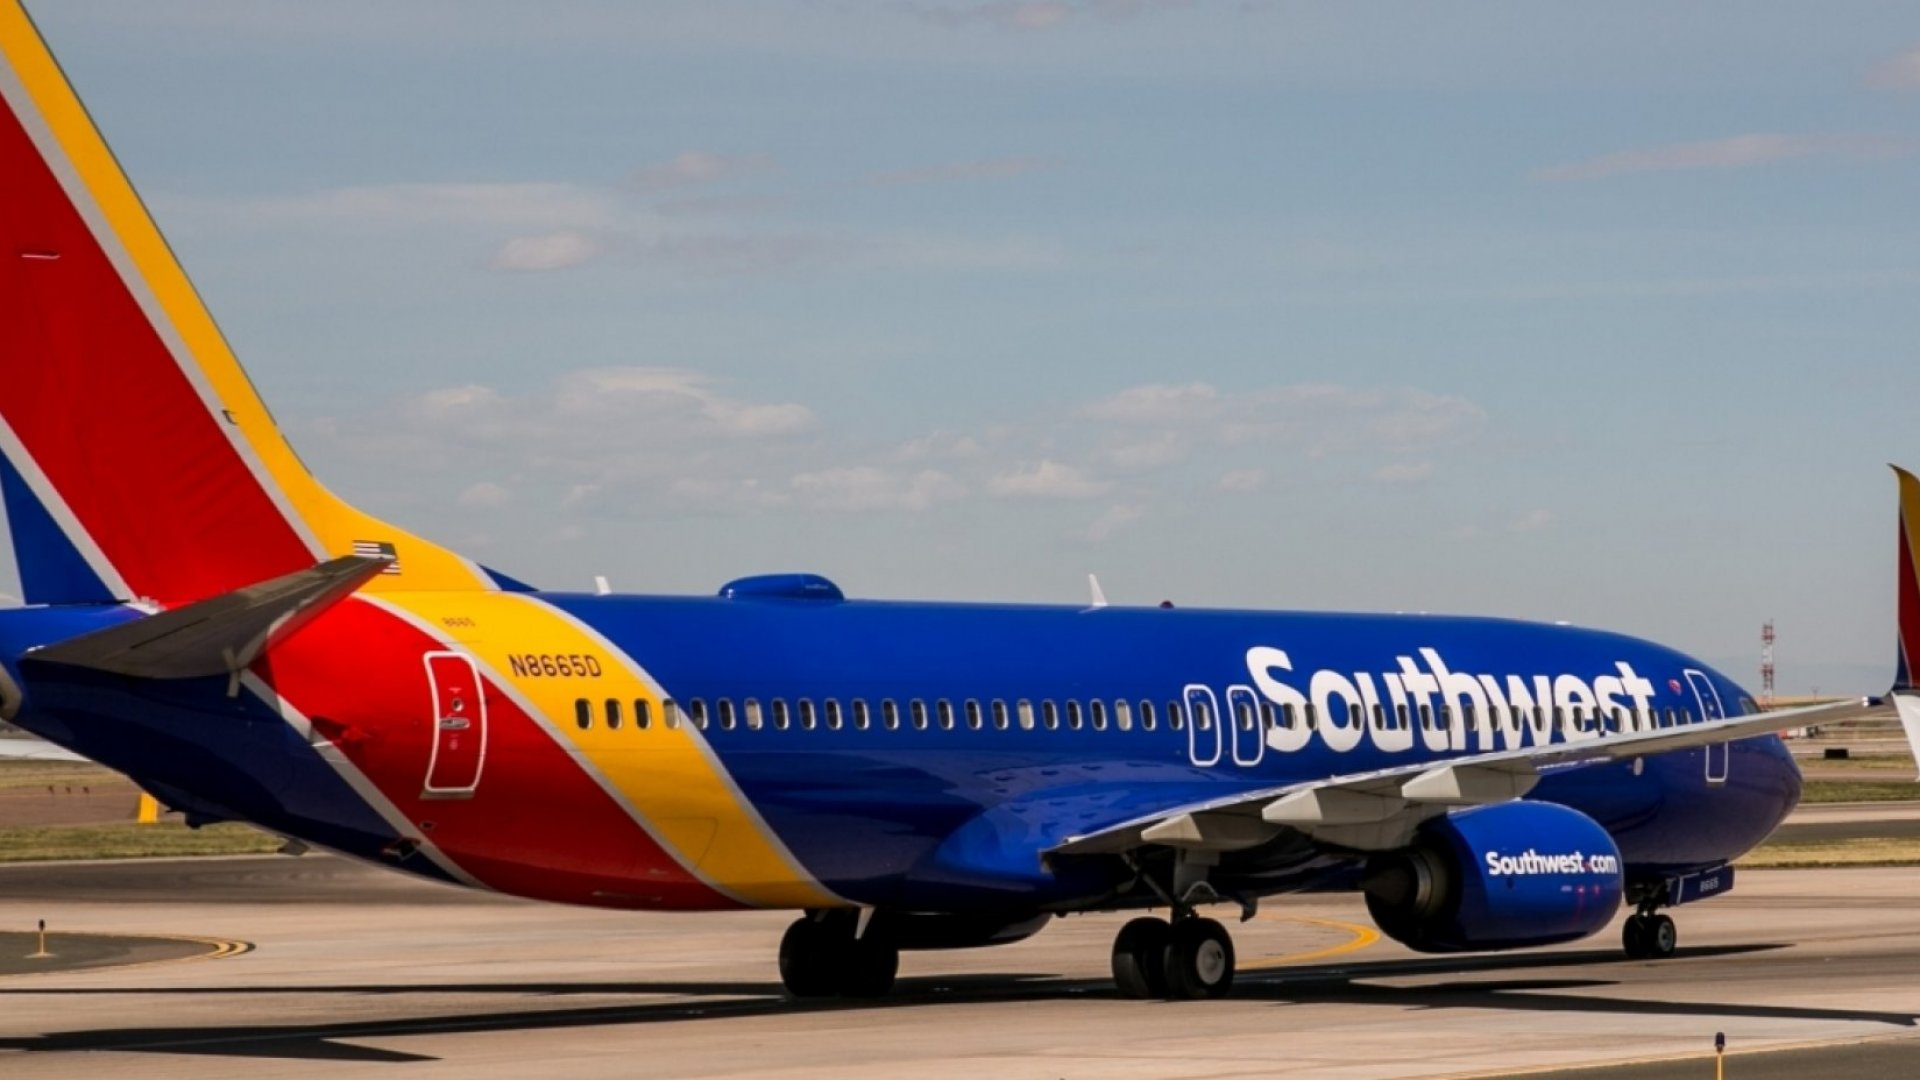 Passengers Used to Love This Perk On Southwest. Now It's Gone, and All We Have Is This Memorial